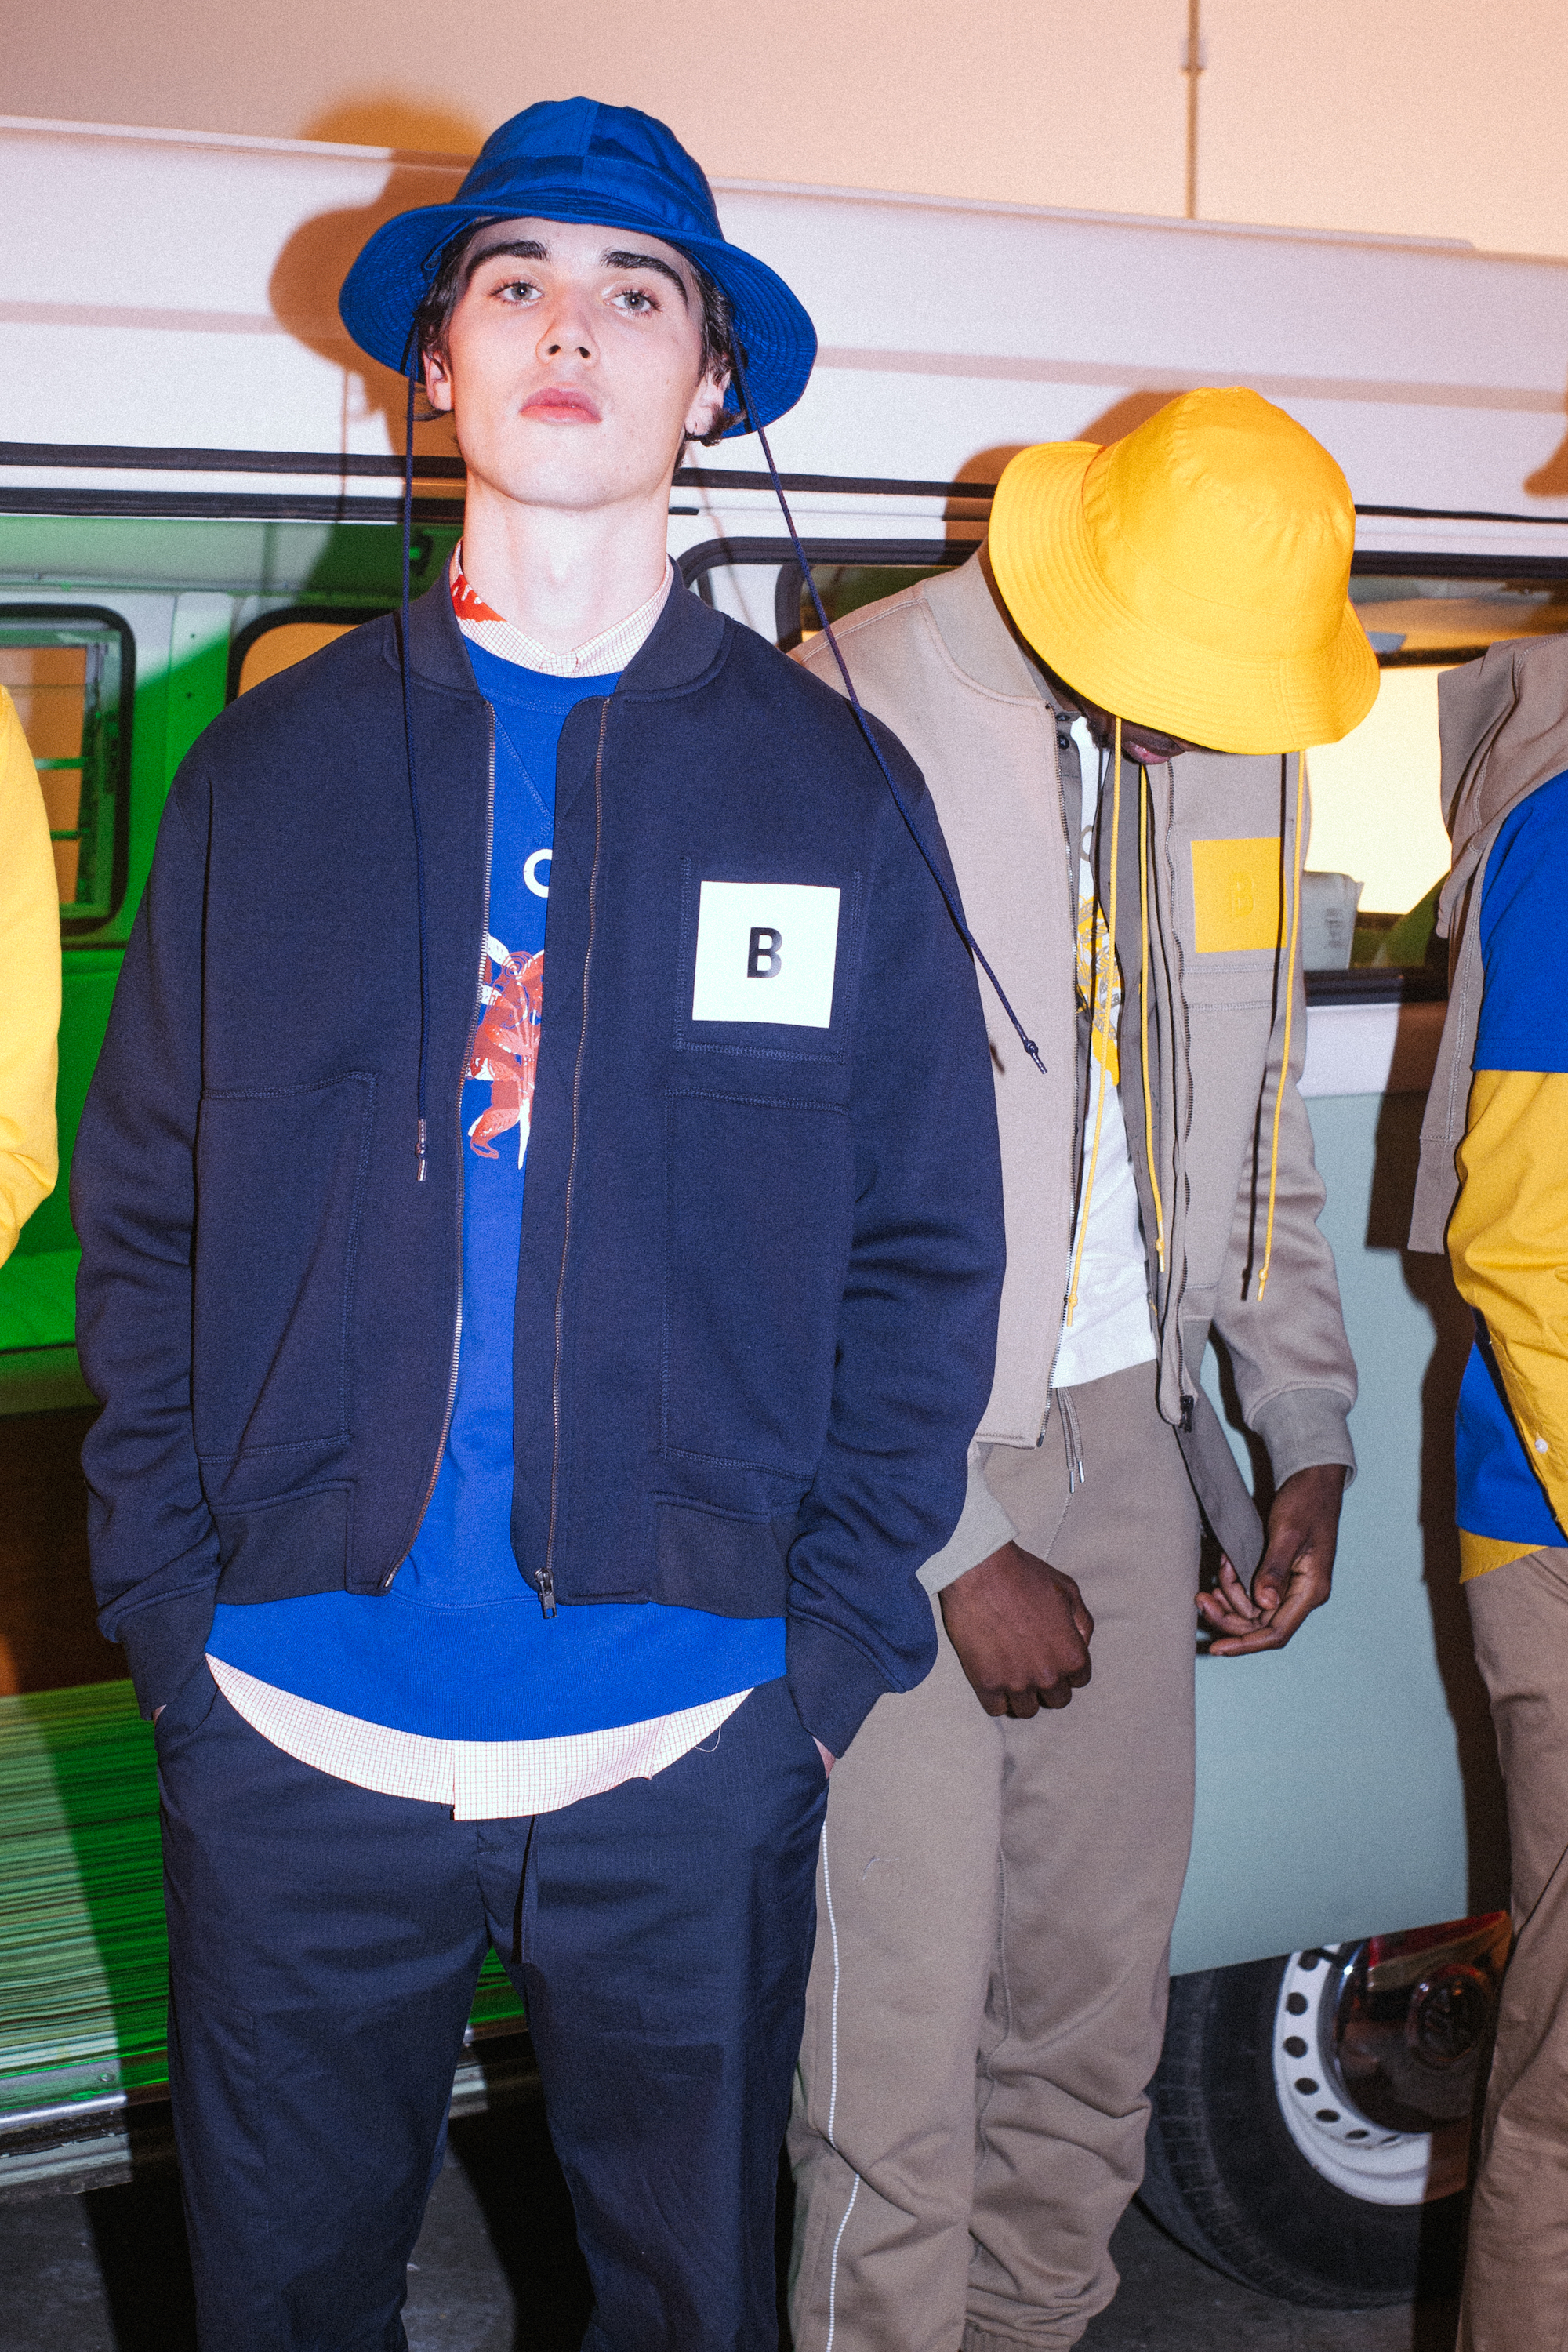 BAND OF OUTSIDERS JADE BERRY Yellow Blue